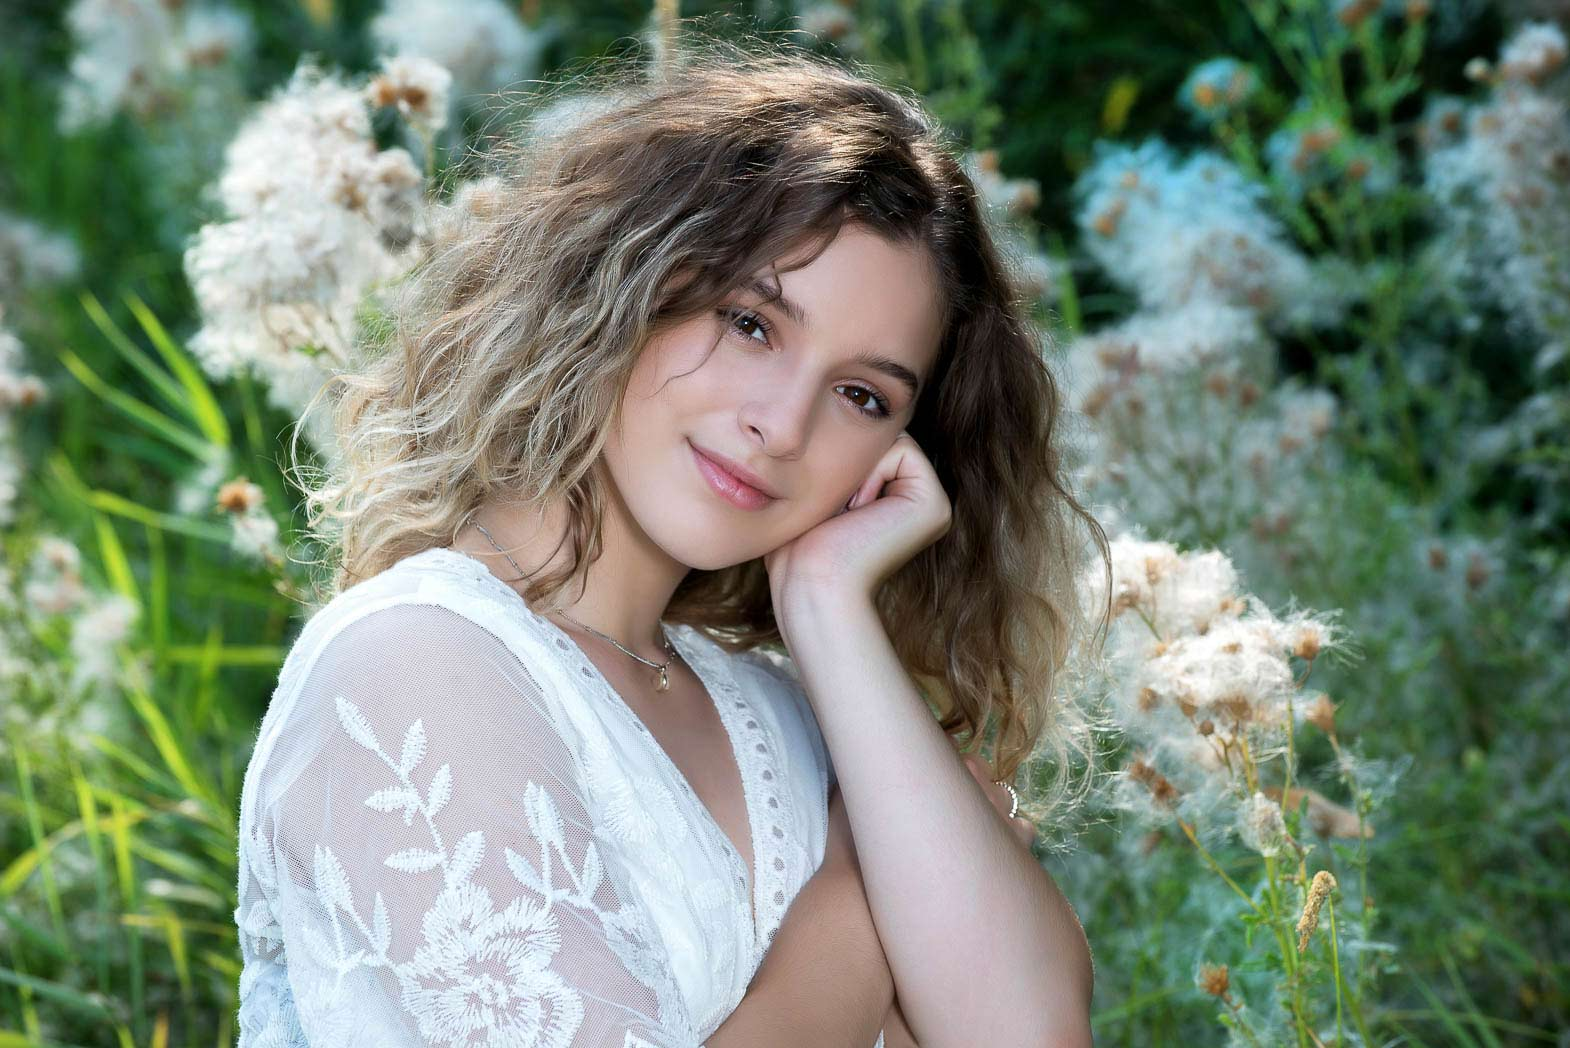 natural senior portraits of girl in white lace with soft smile and summer foliage